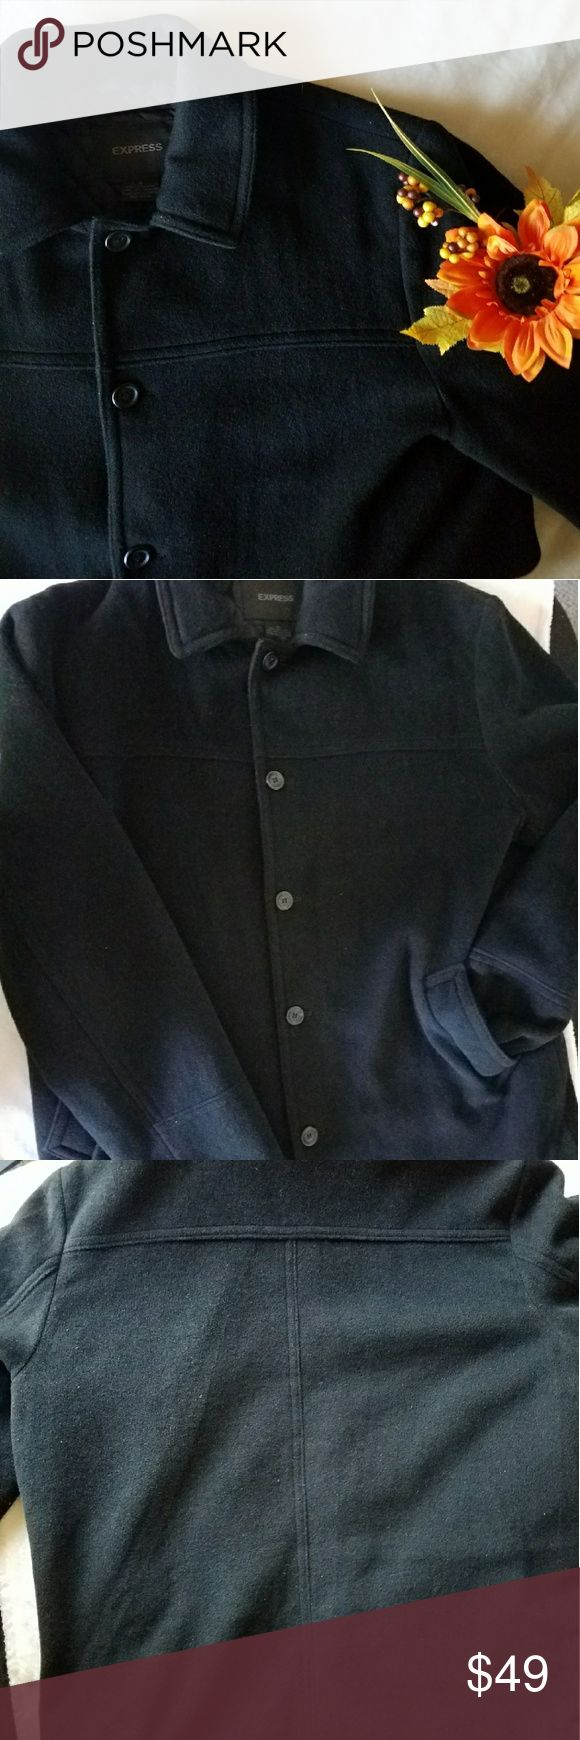 🌟 Express Men's Pea Coat 🌟 Brand New Without Tags!  Men's Express Pea Coat!  In EXCELLENT CONDITION!  Color is solid black! It is not faded. Lighting in picture may appear to show fading from excess lighting, but the color is pristine. Full black.  Perfect for upcoming winter to stay warm ❄  Size XL  Any questions, feel free to ask 😊 Express Jackets & Coats Pea Coats